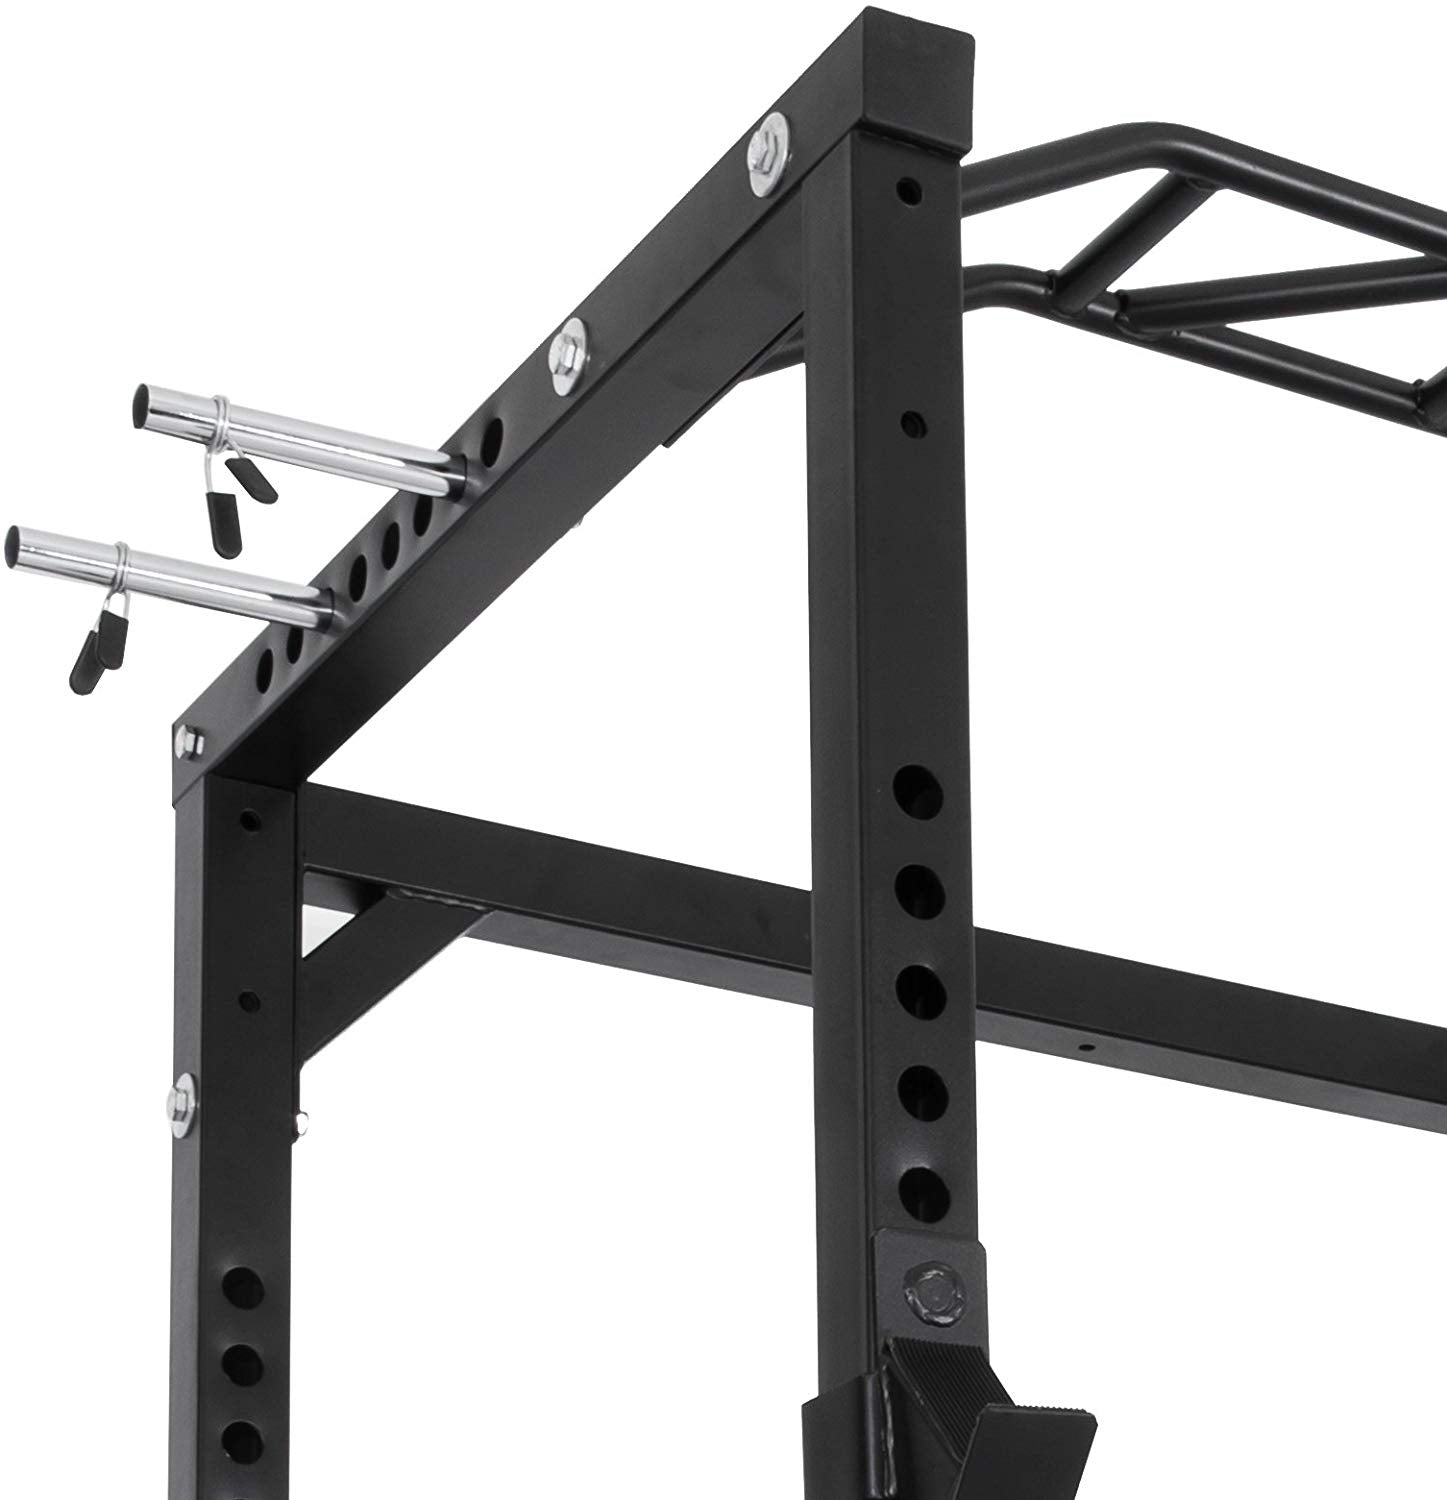 Happybuy Multi-Grip Chin-Up Fitness Power Rock Power Racks Weightlifting Power Rack Olympic Squat Cage Power Rack Cage System with Adjustable Bar for Home Gym (BD-41)